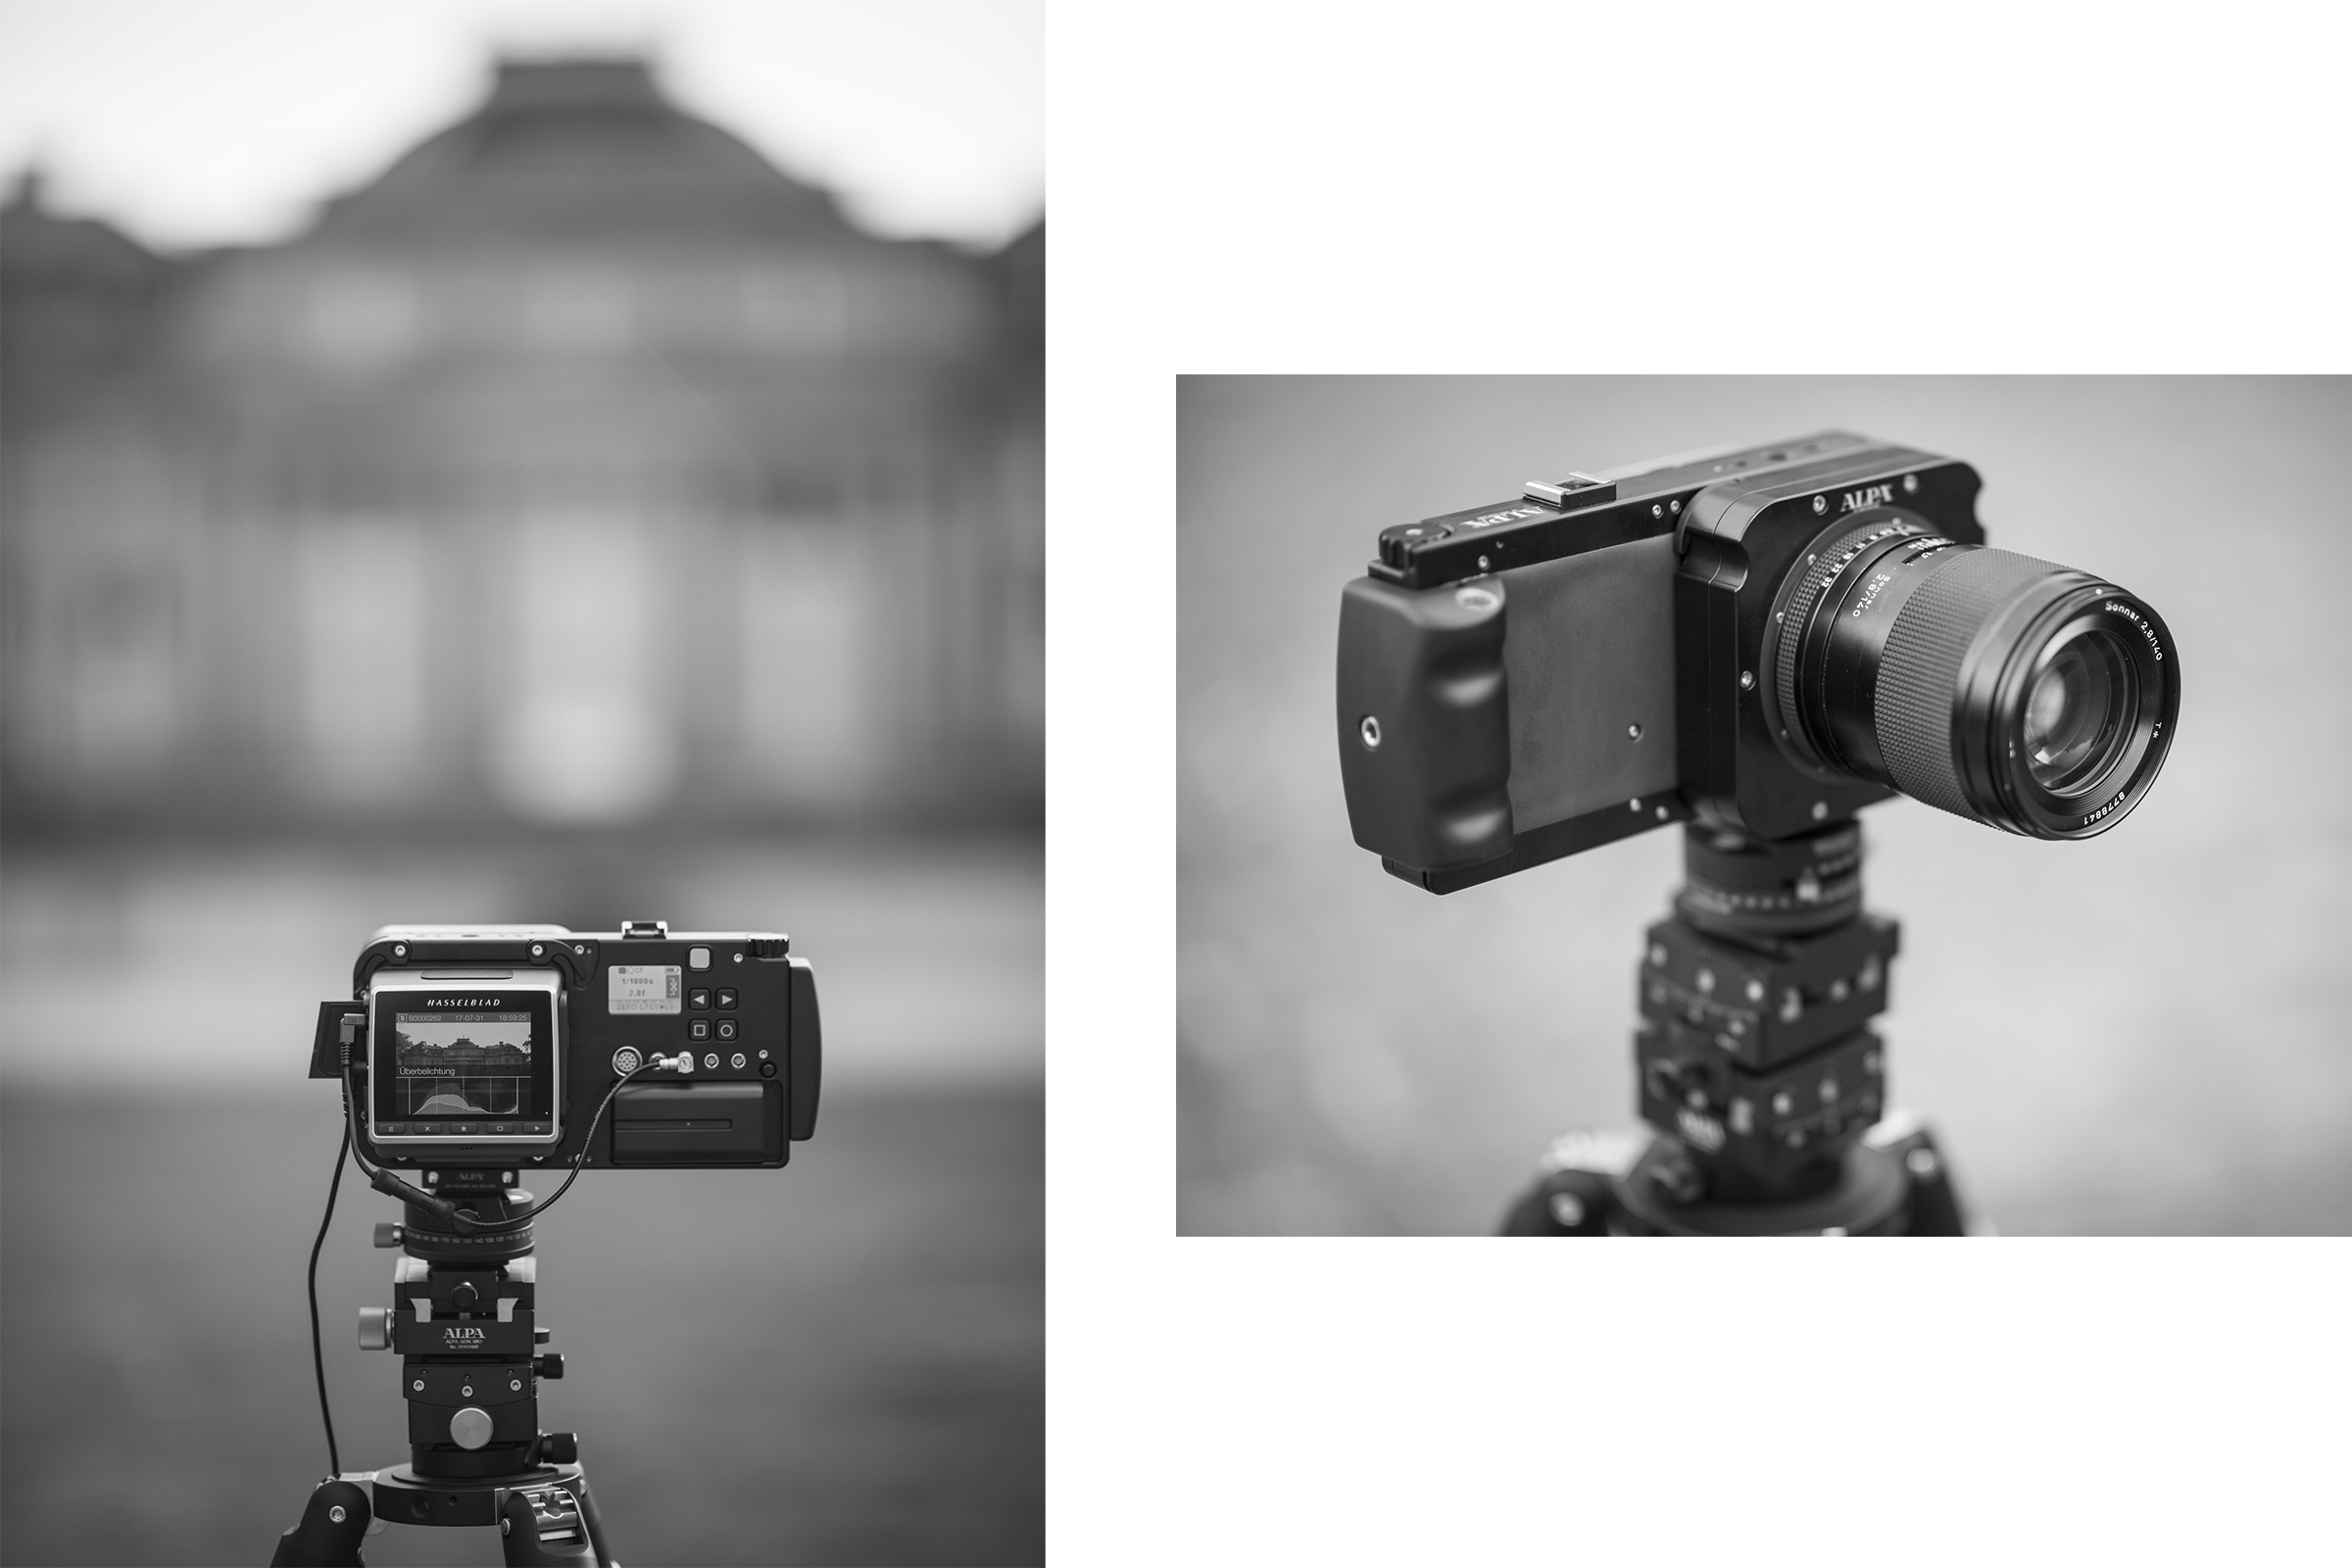 ALPA Lens Module Contax 645 and ALPA12 FPS: Can be operated with nearly any digital back.